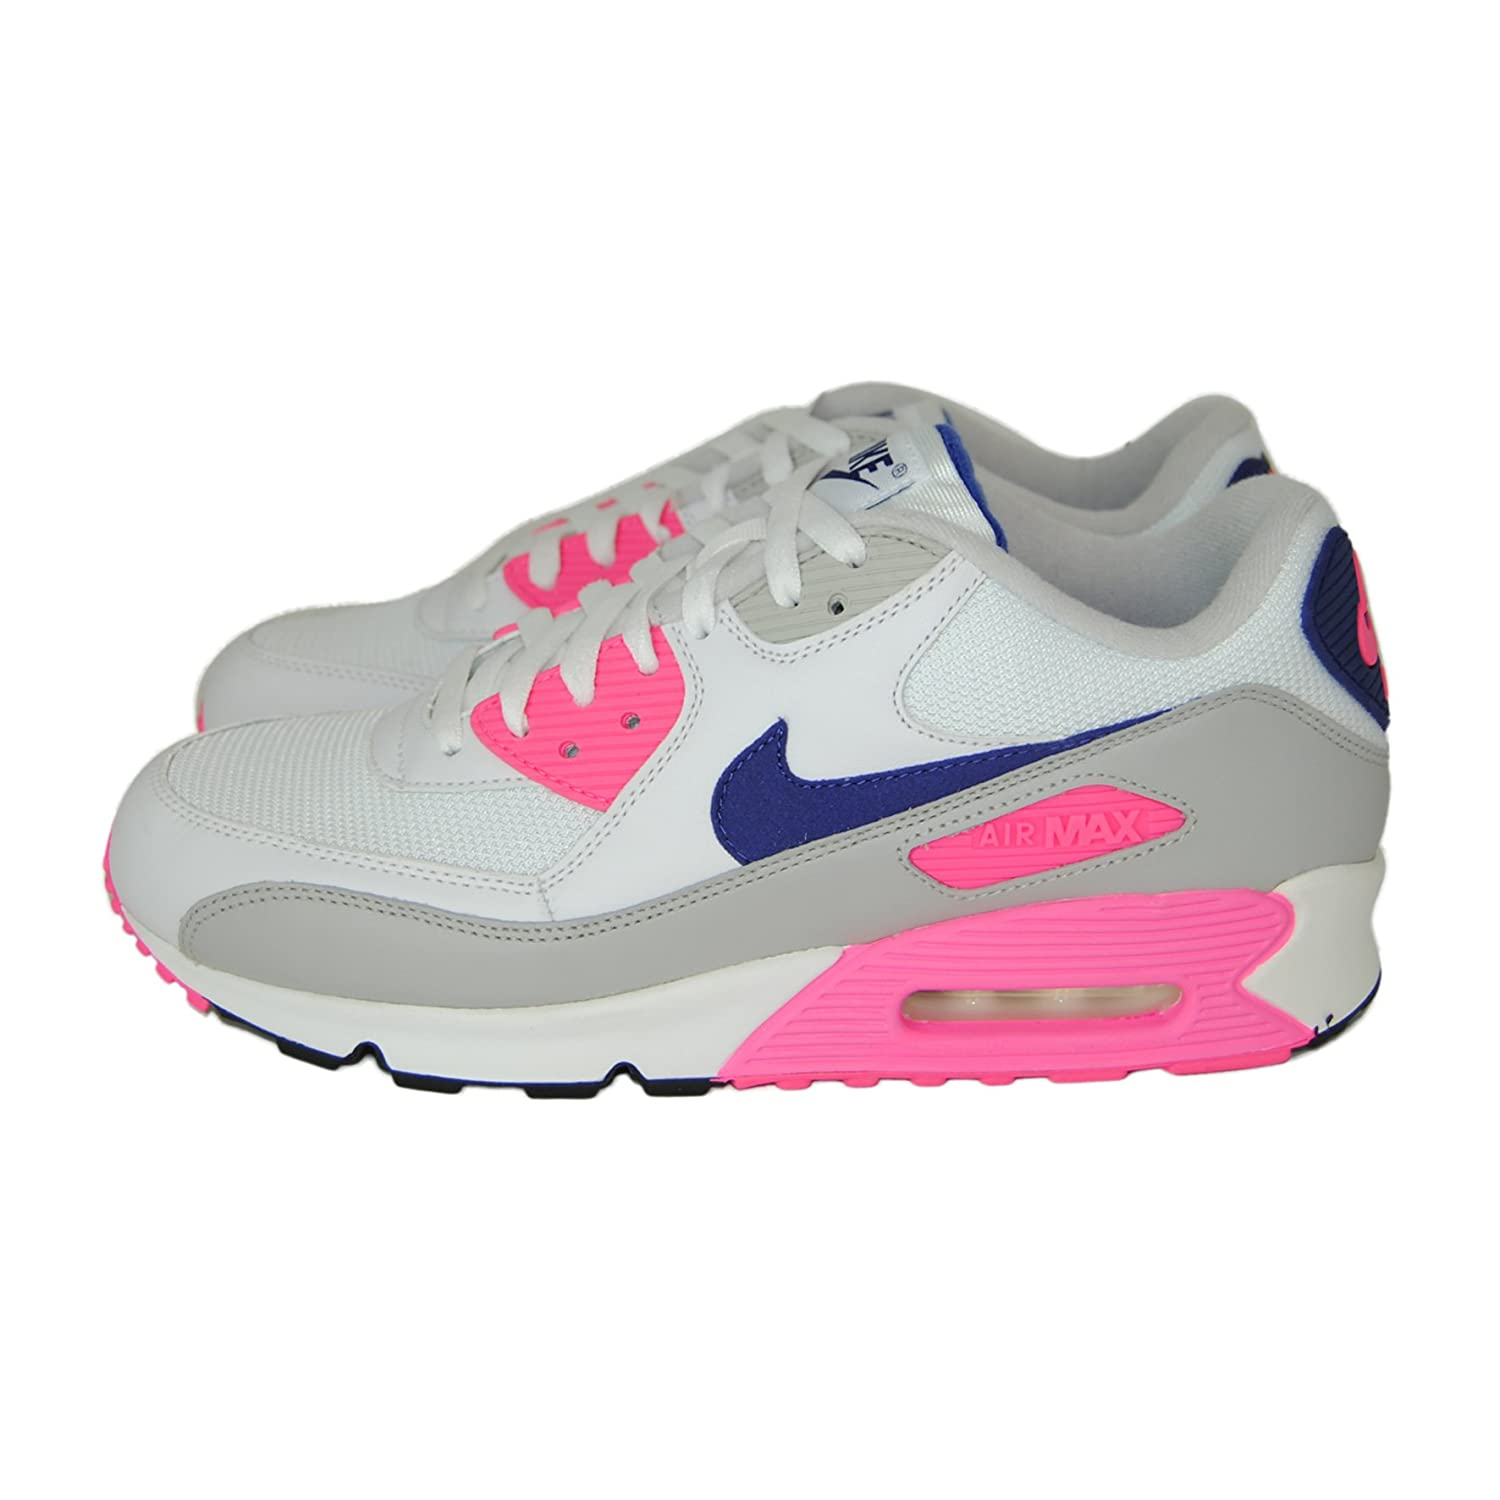 1e688bc2aa NIKE Air Max 90 Trainers White Concord Laser Pink Size 9 UK: Amazon.co.uk:  Shoes & Bags